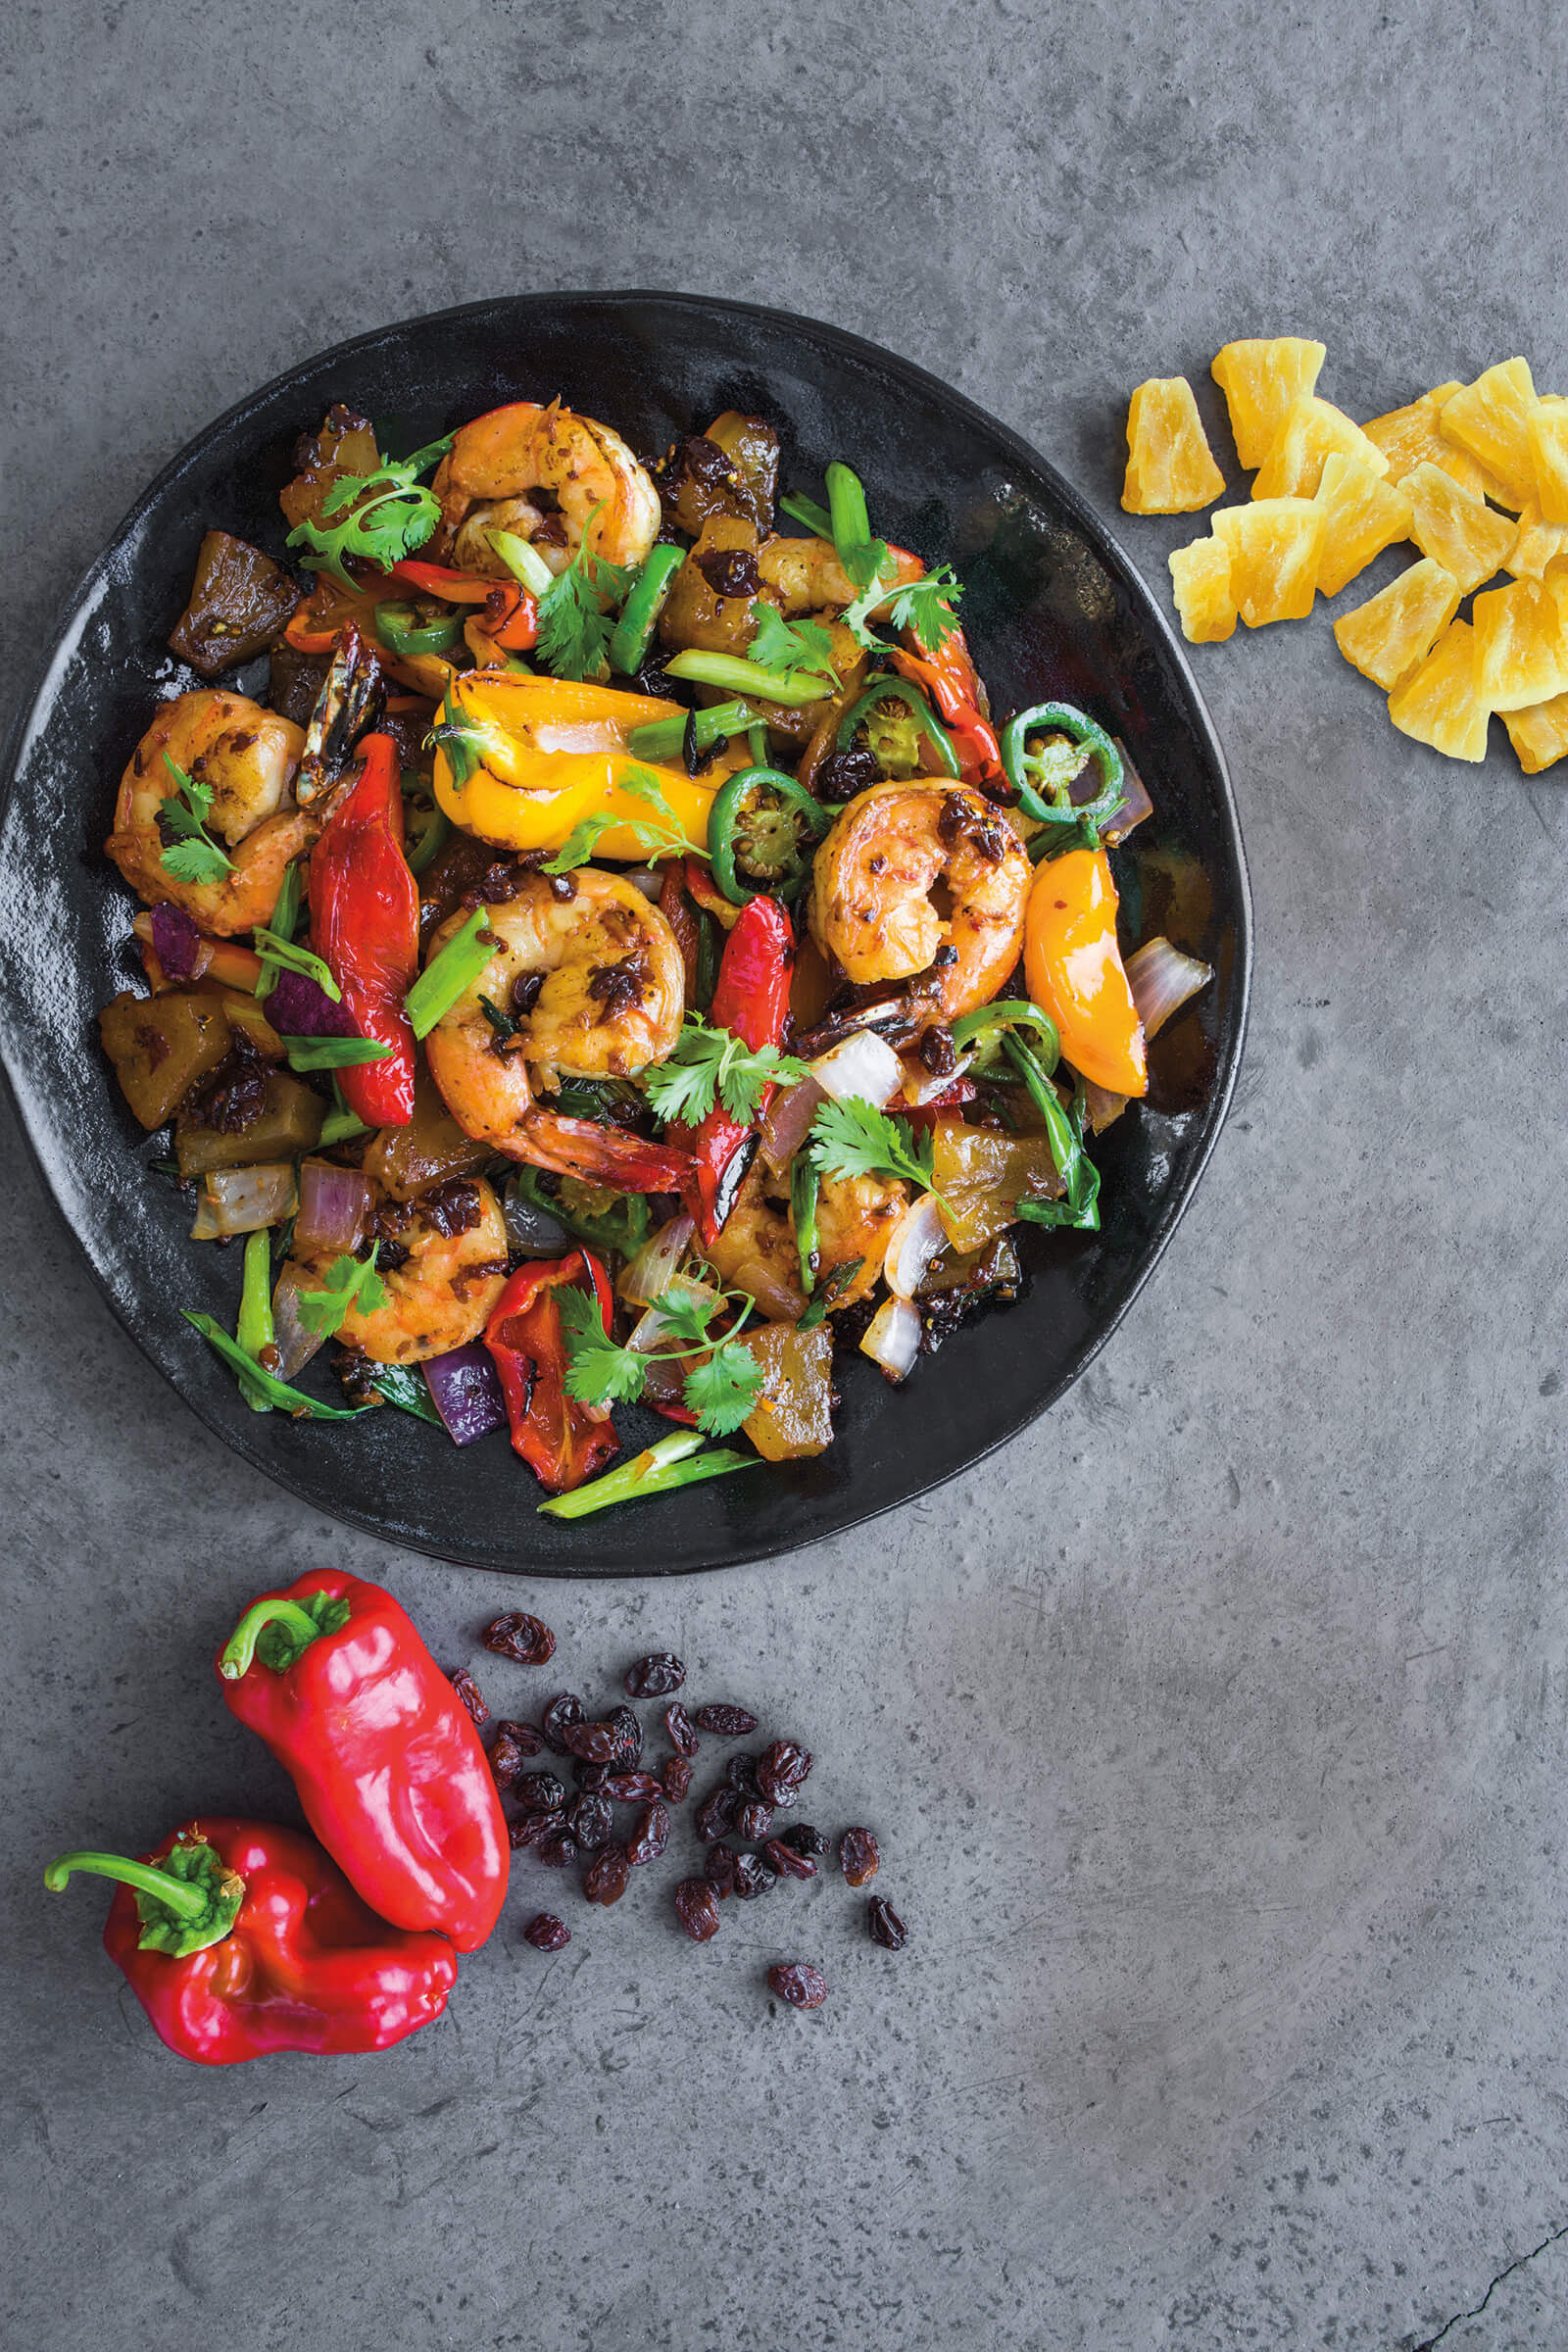 Pineapple and Raisin Shrimp Stir Fry